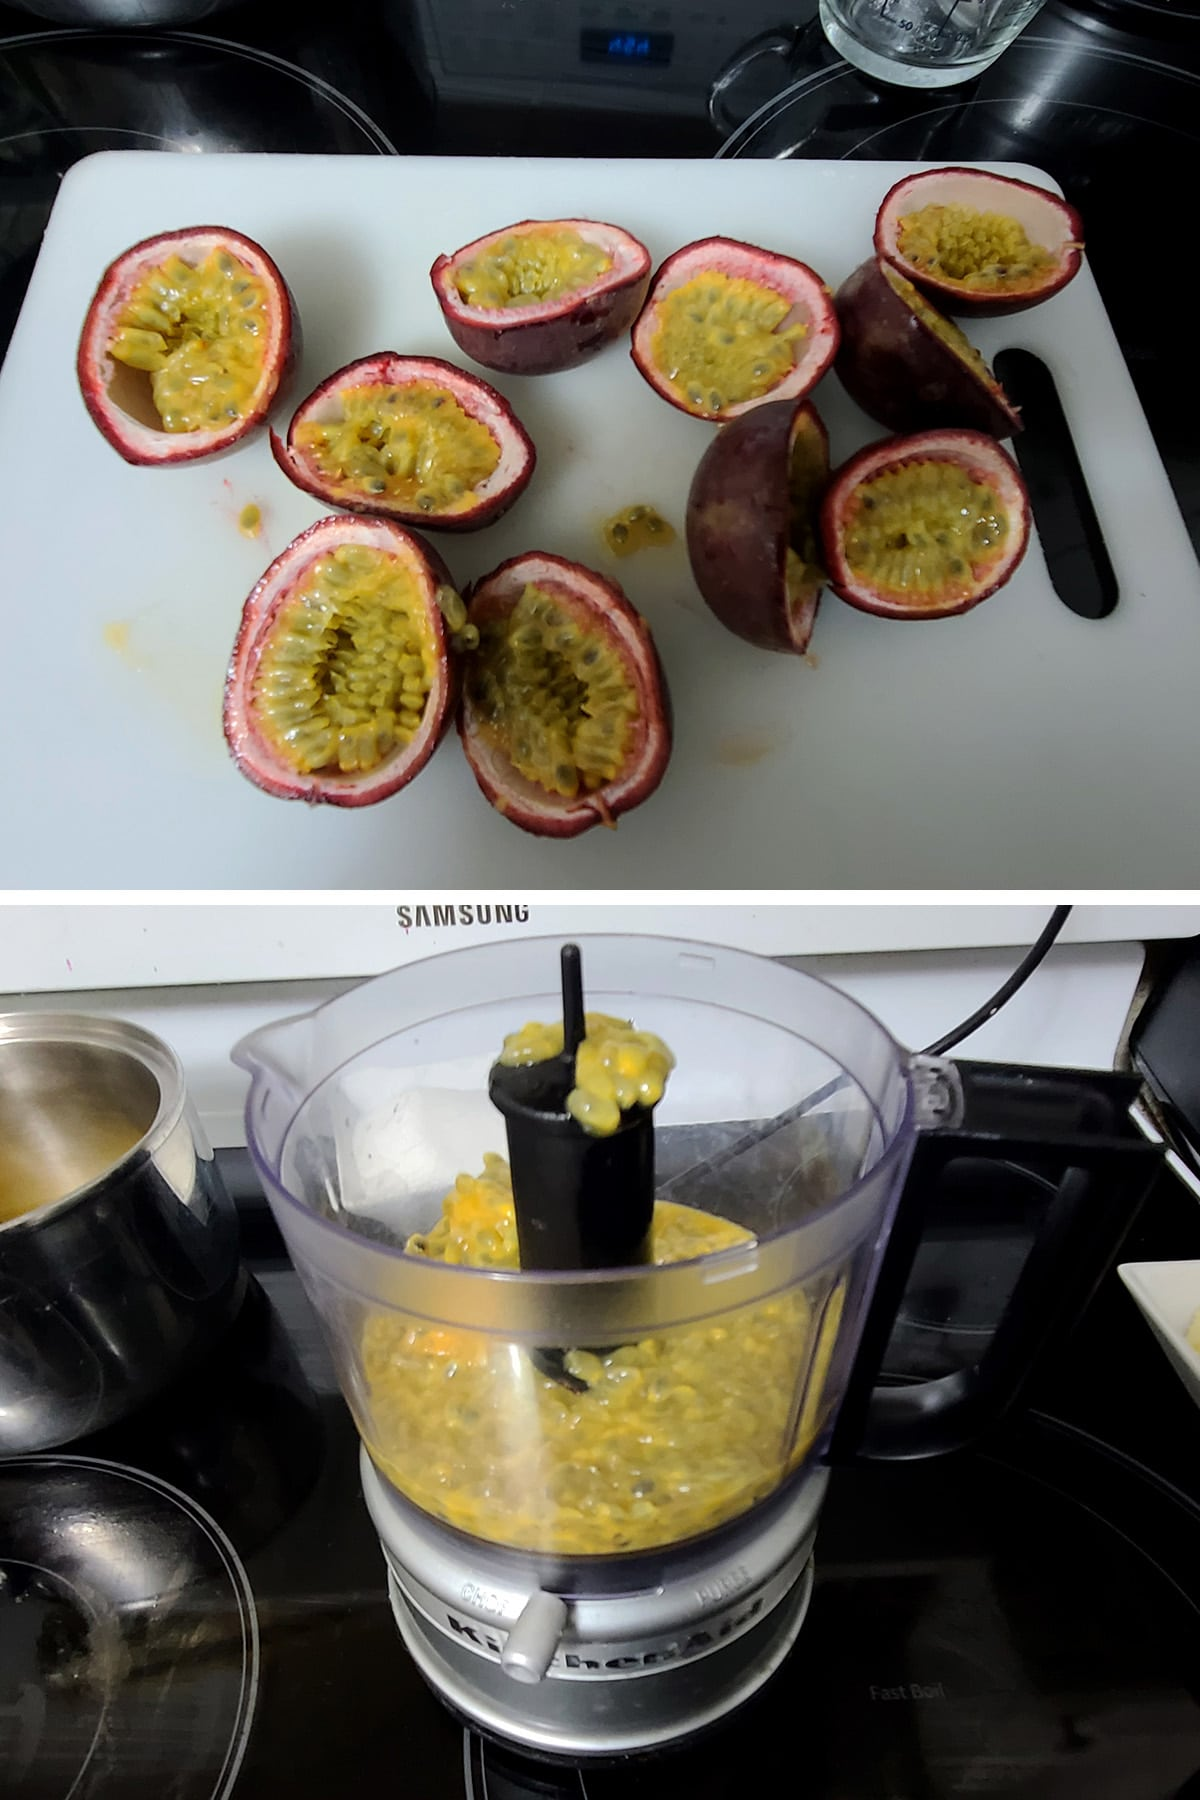 Passion fruit pulp being scooped into a mini food processor.